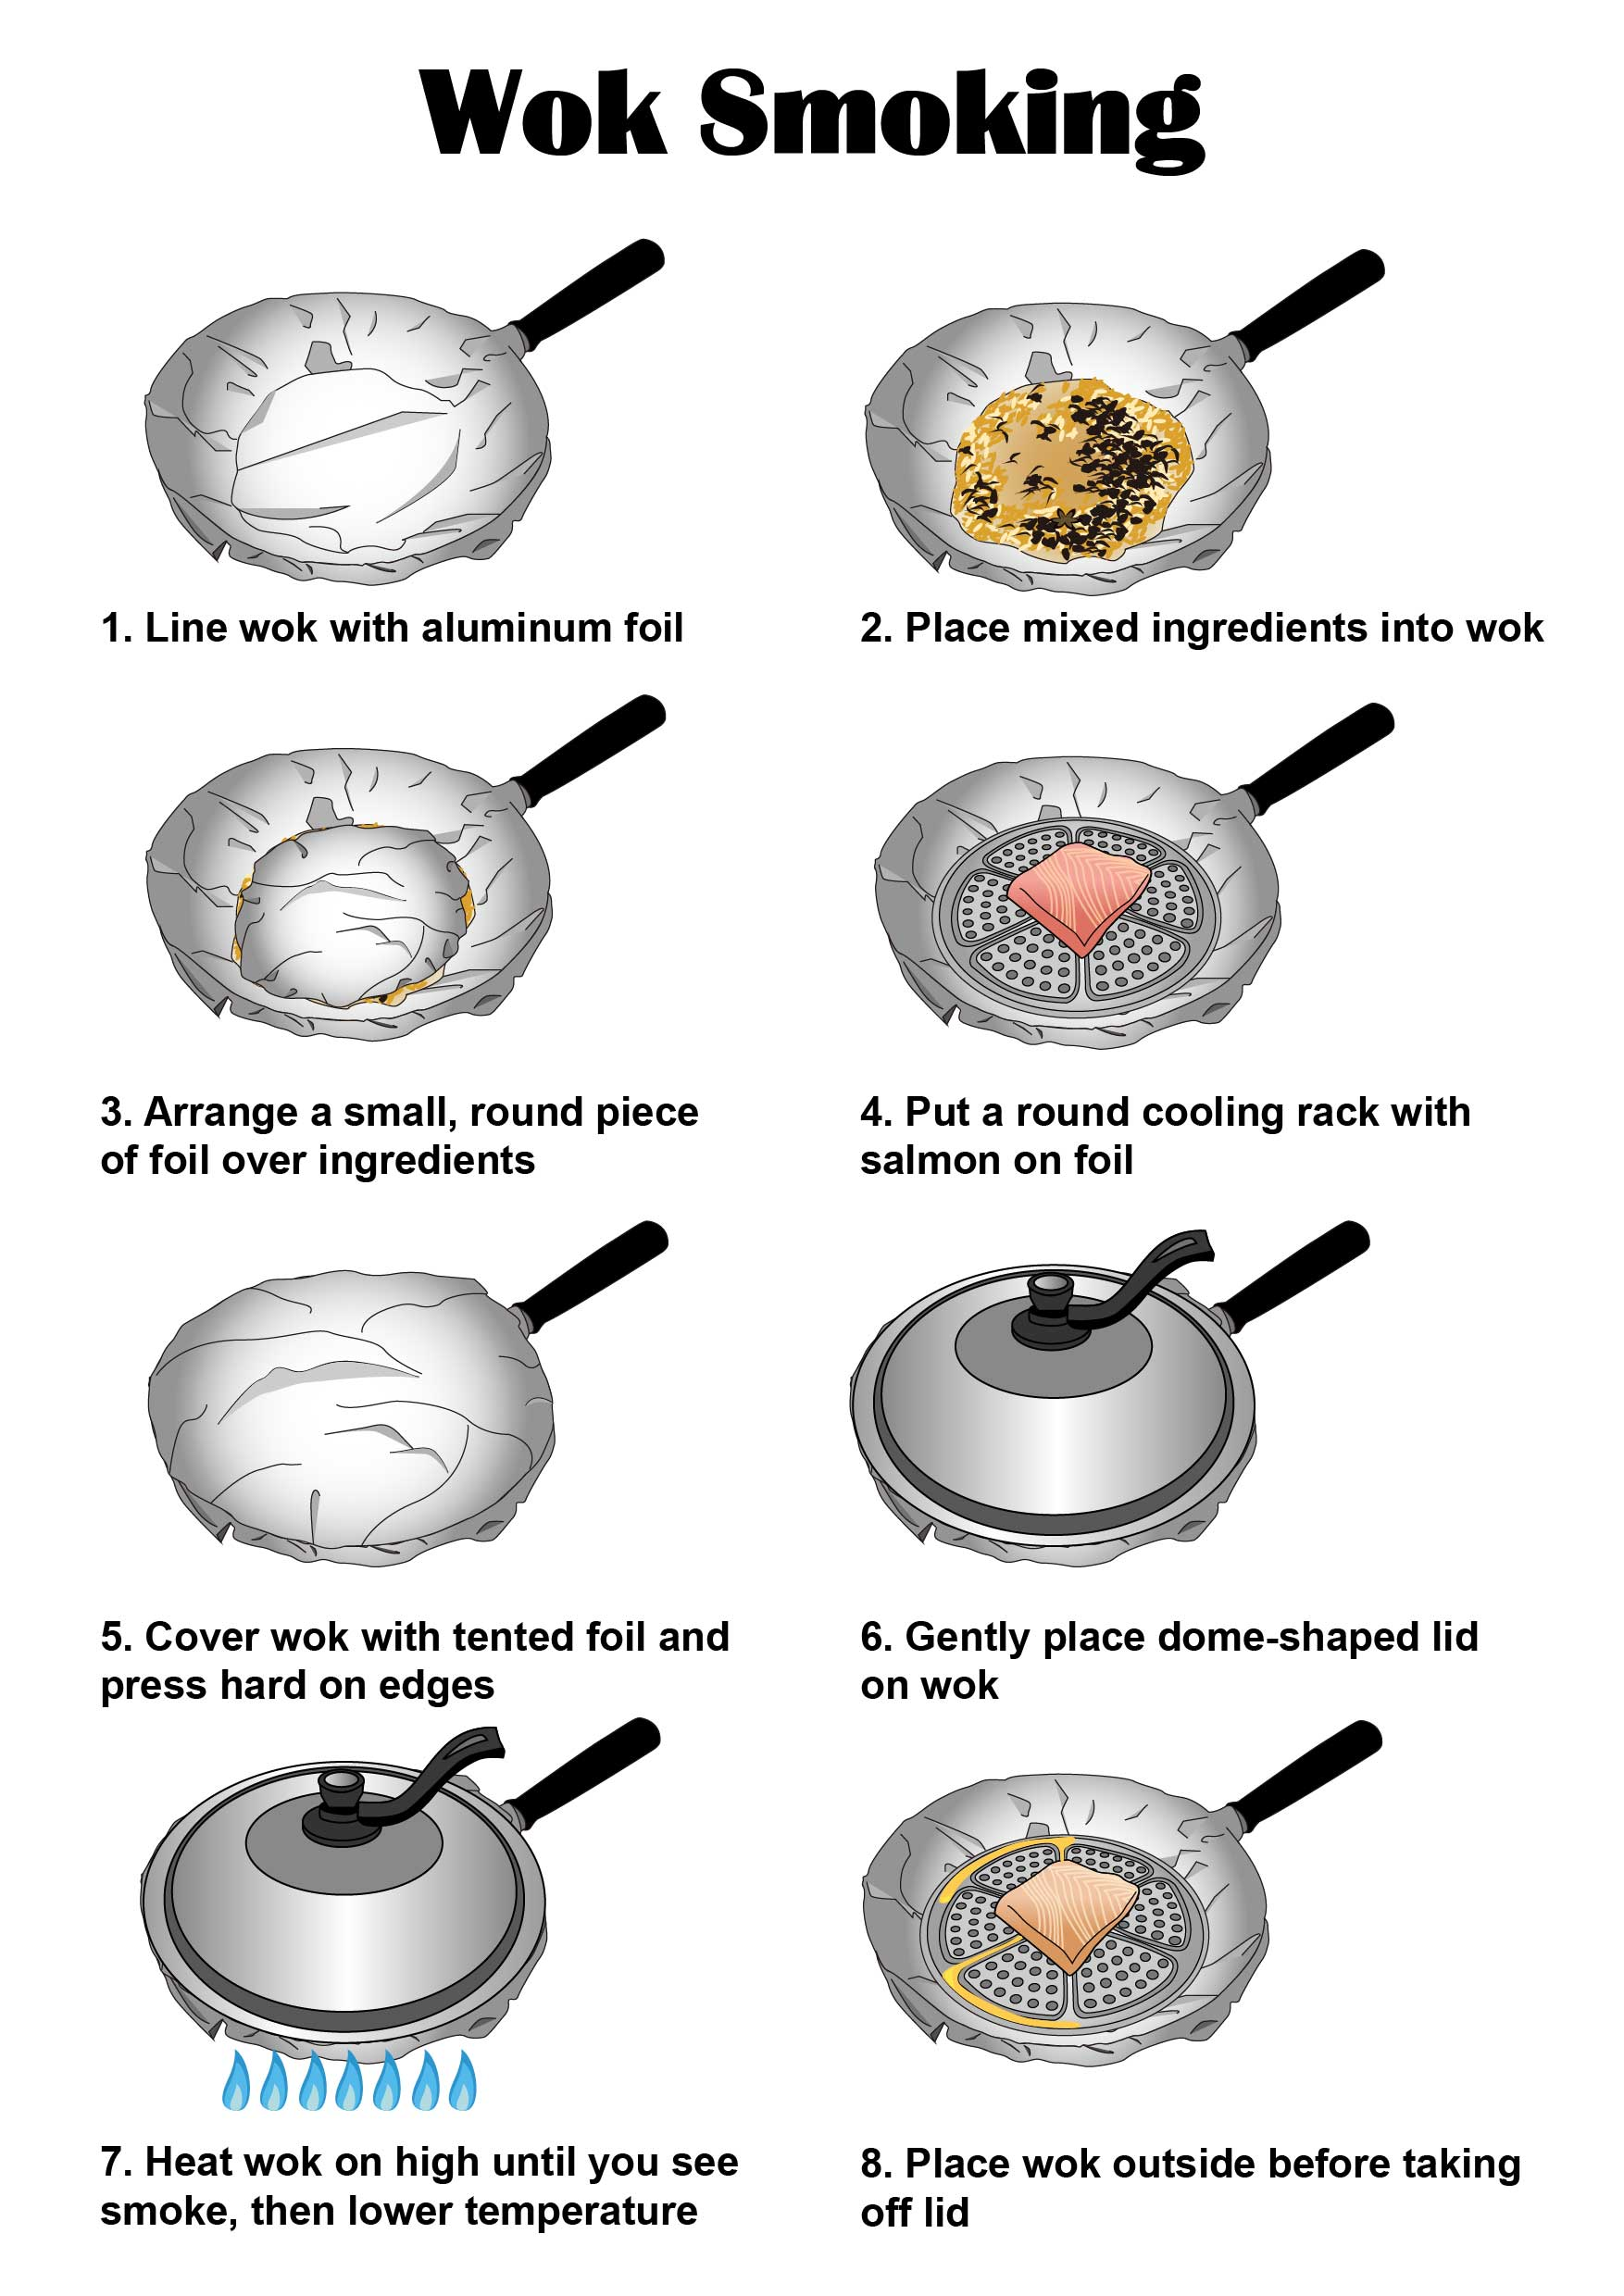 Wok Smoking Procedure